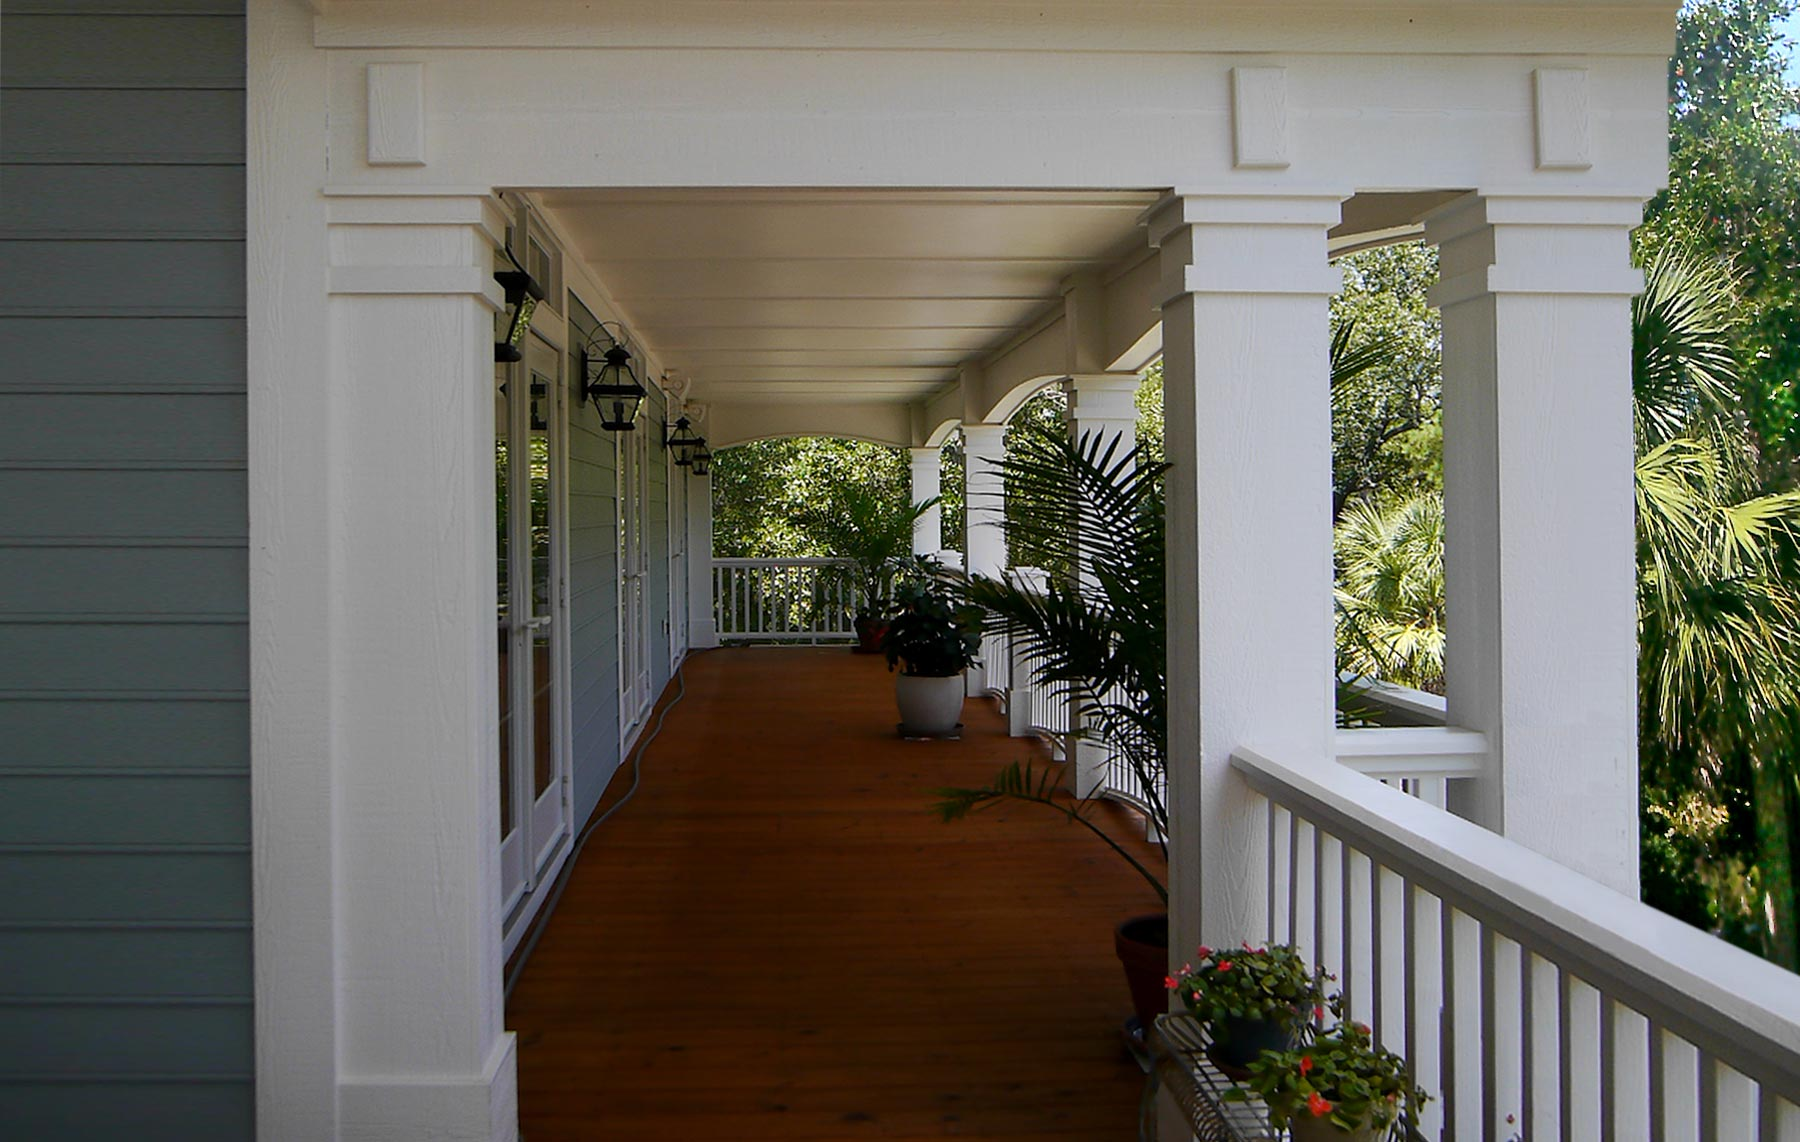 The veranda is still a time-honored tradition in the south.